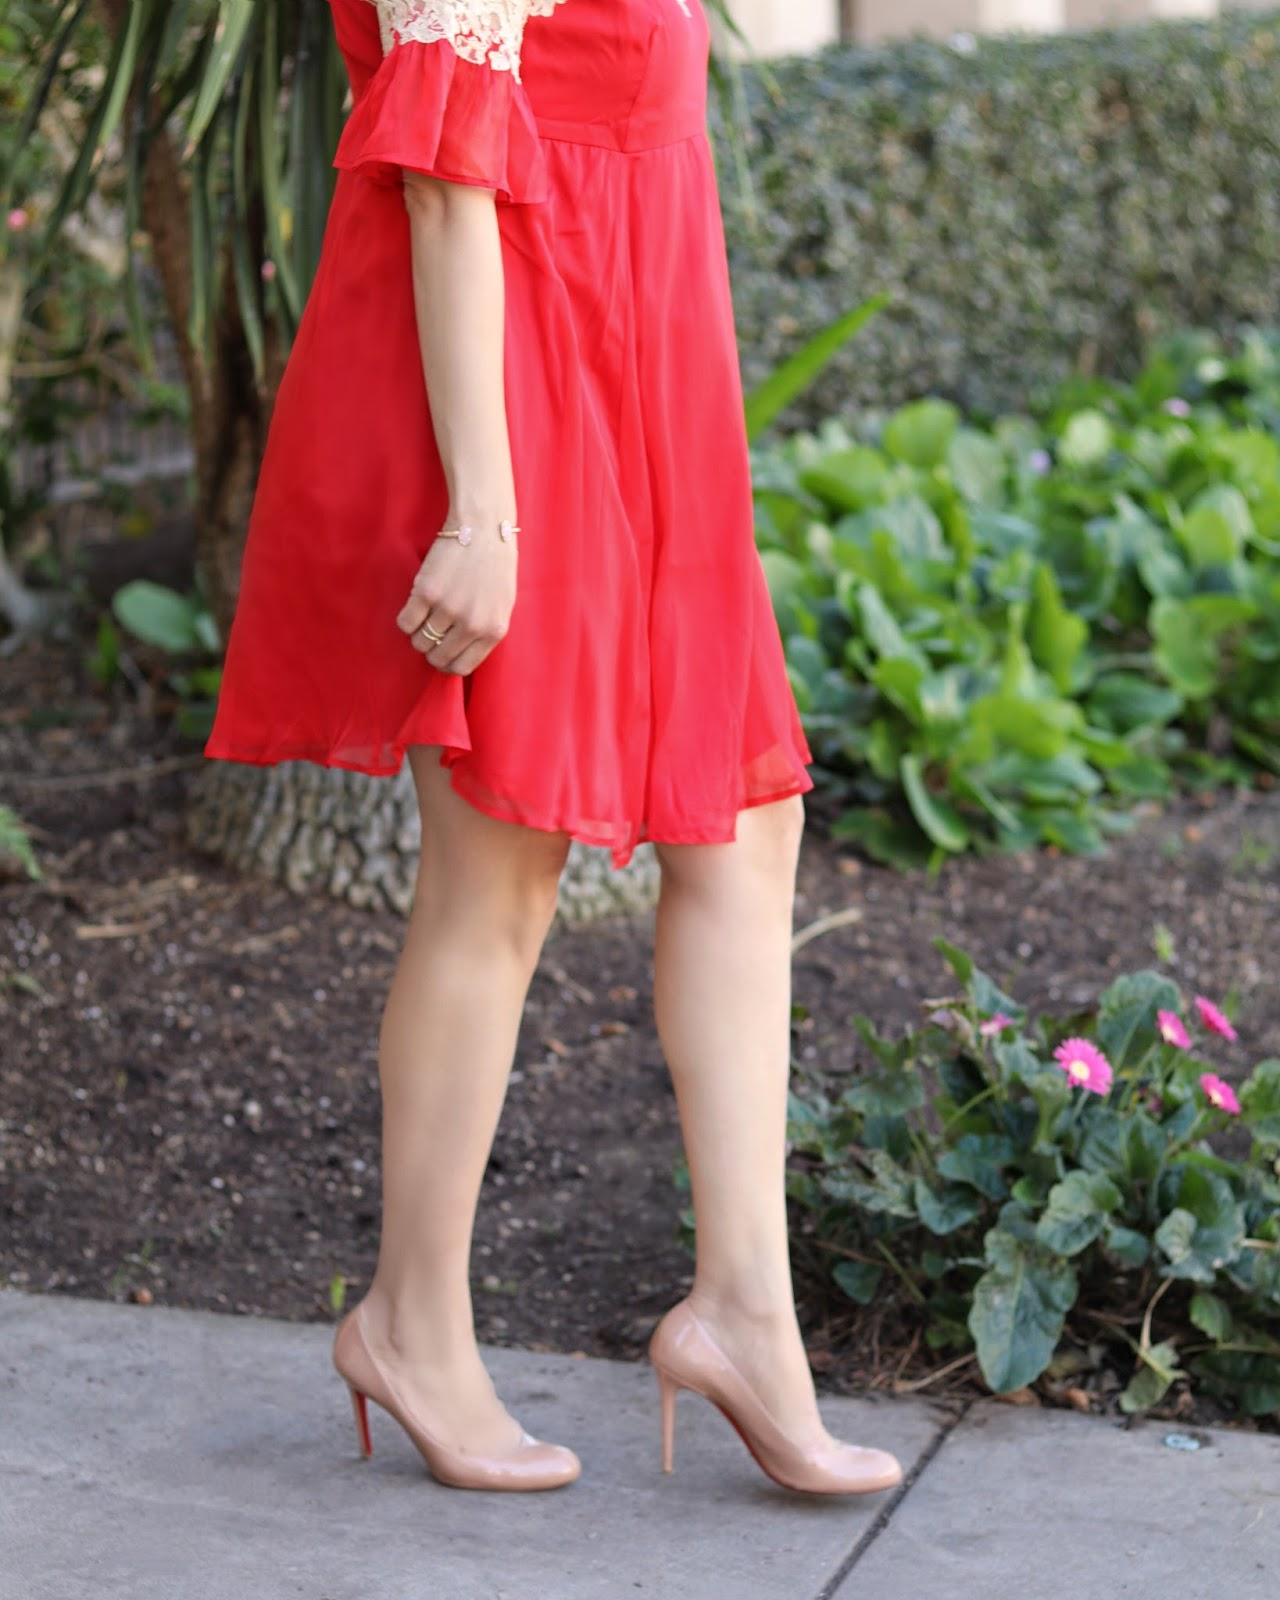 ASOS red dress, christian louboutin nude pumps, san diego style blogger